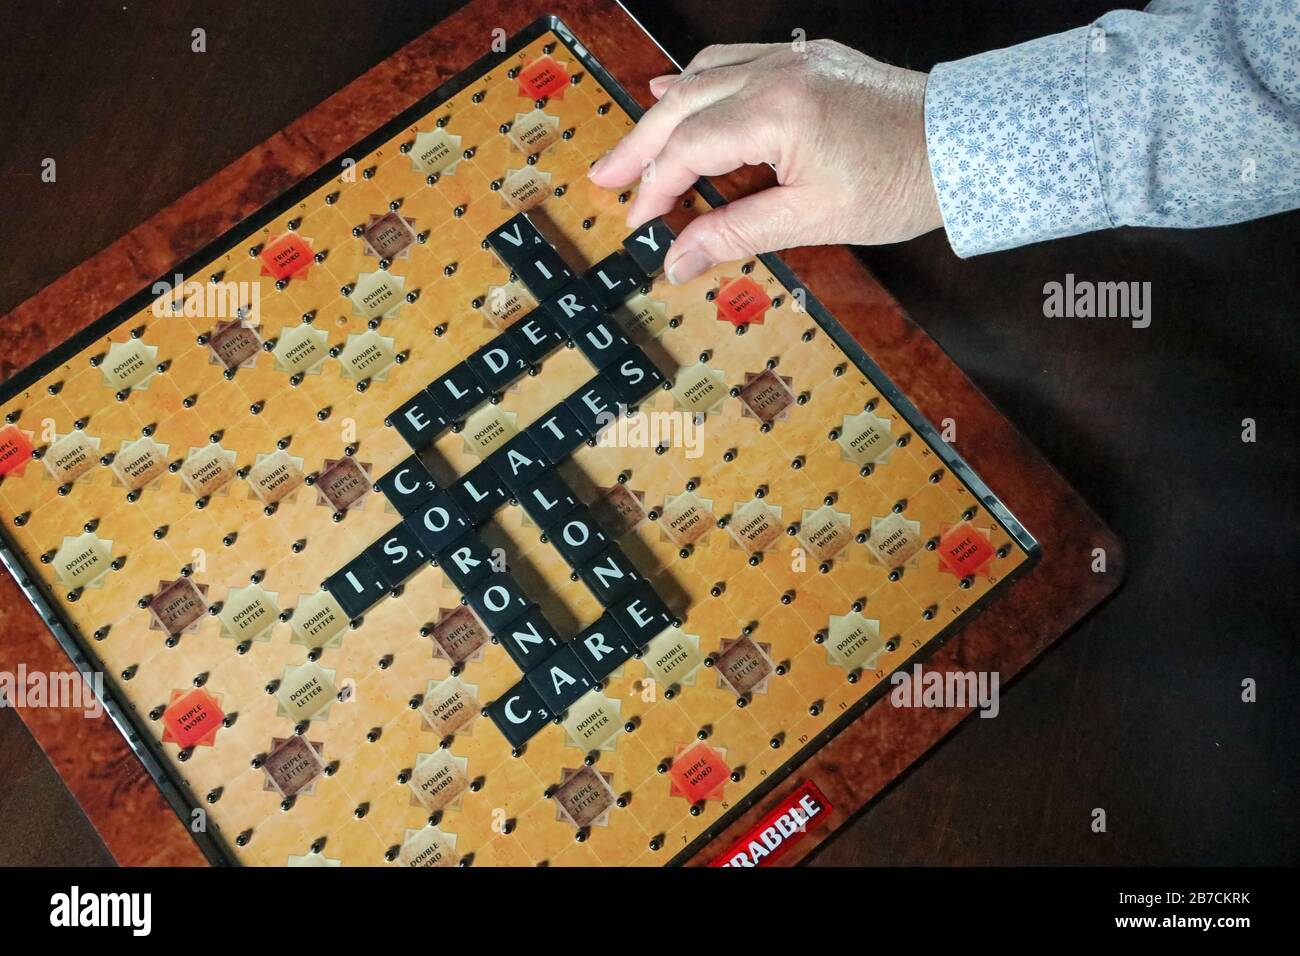 Board Games Might Help The Elderly Through Coronavirus Imposed Isolation Stock Photo Alamy